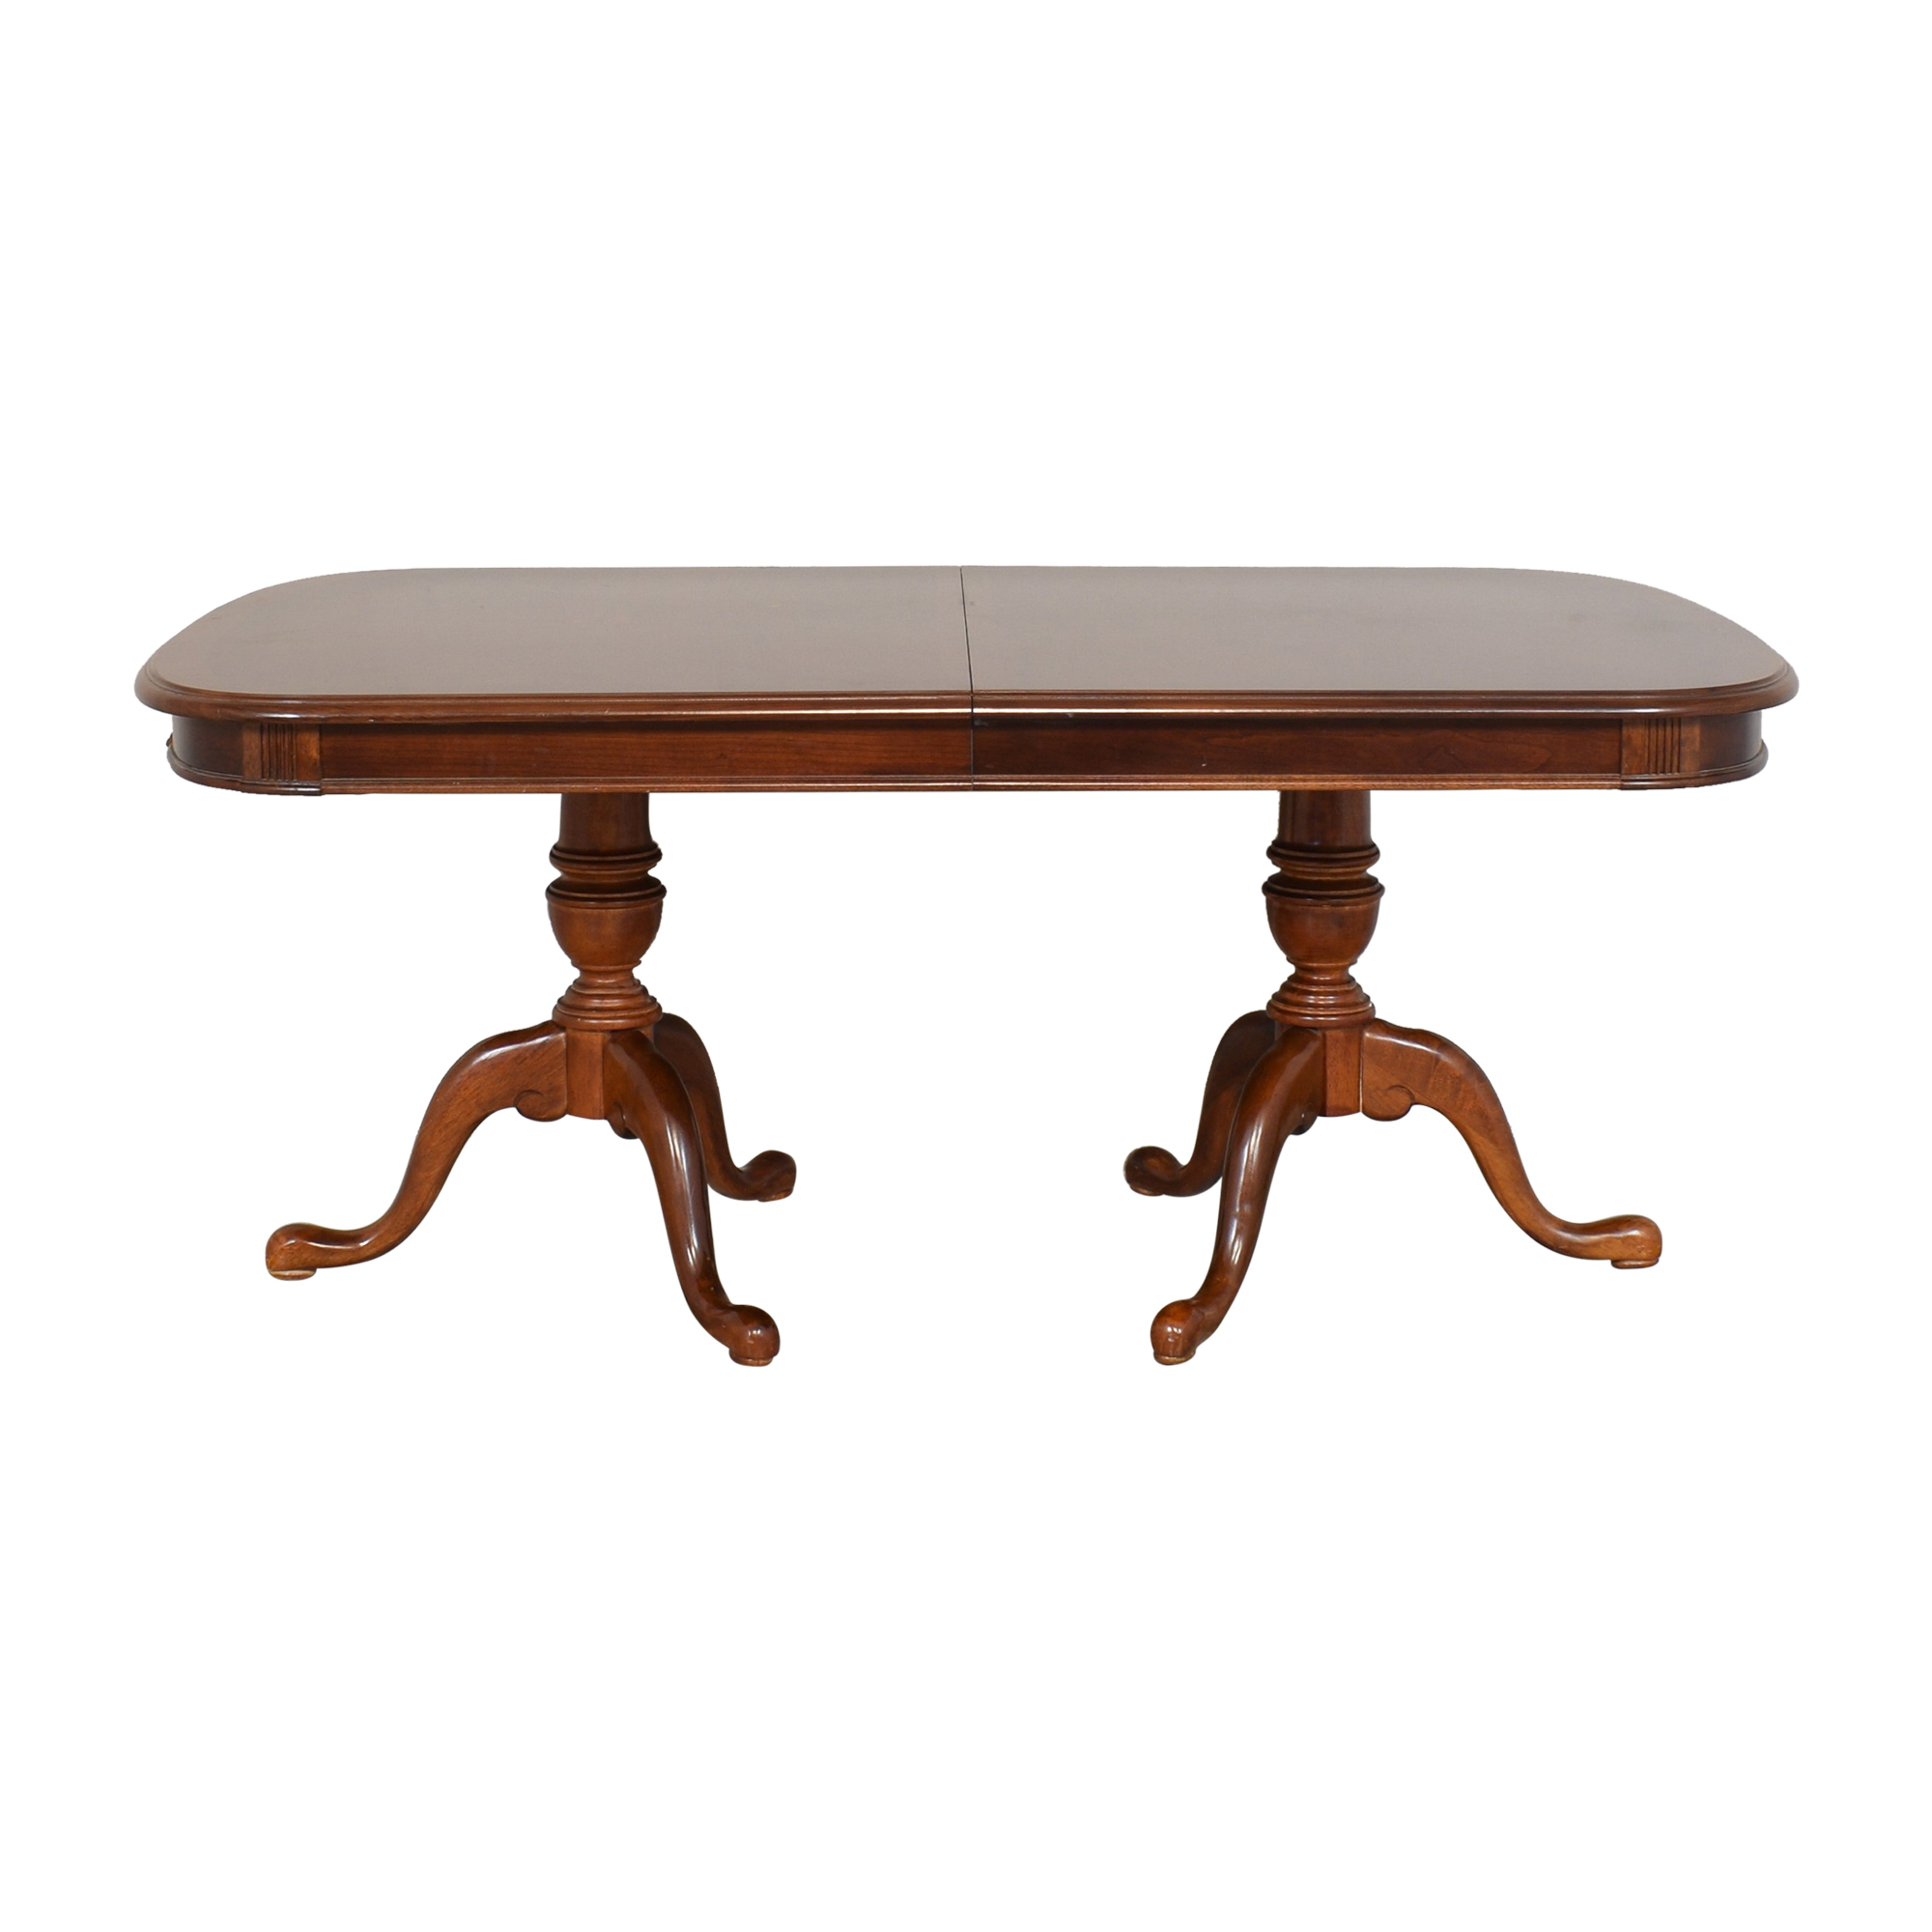 Universal Furniture Universal Furniture Double Pedestal Extending Dining Table on sale